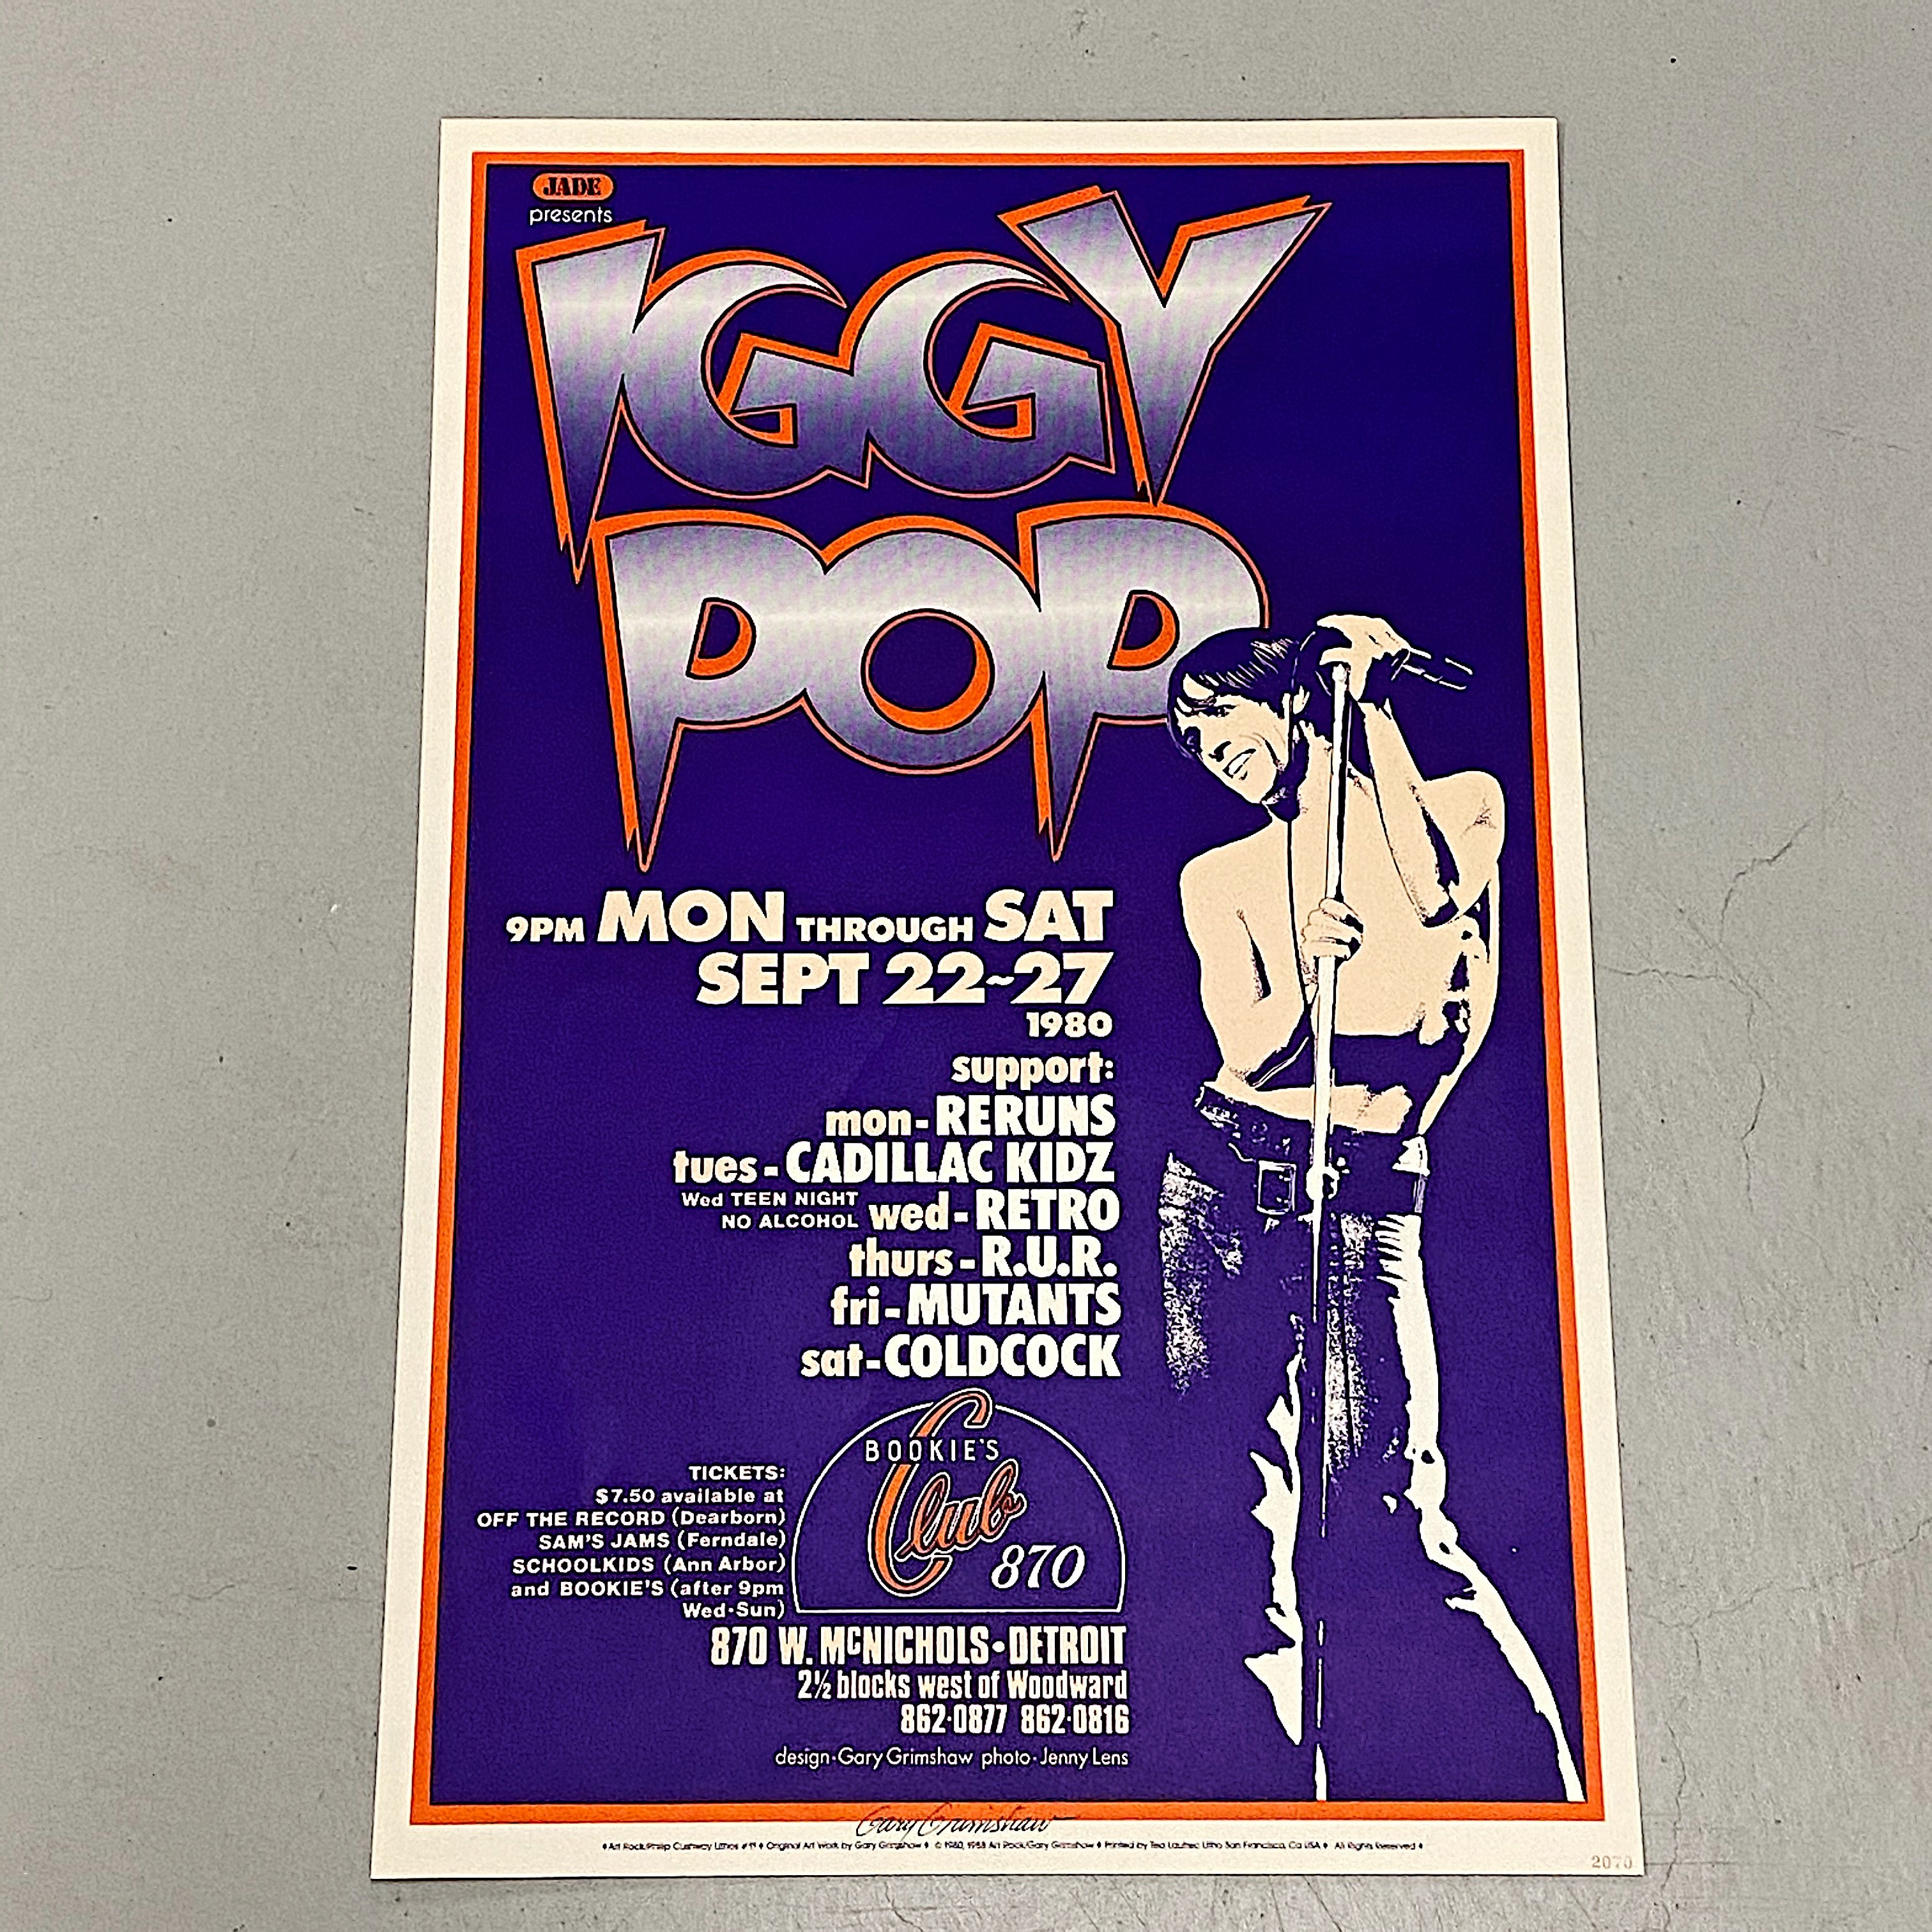 Rare Iggy Pop Concert Poster by Gary Grimshaw - Artist Signed Print 1988 - Bookie's Club Detroit - 28 x 18 - 1980s Rock Posters - Limited Edition